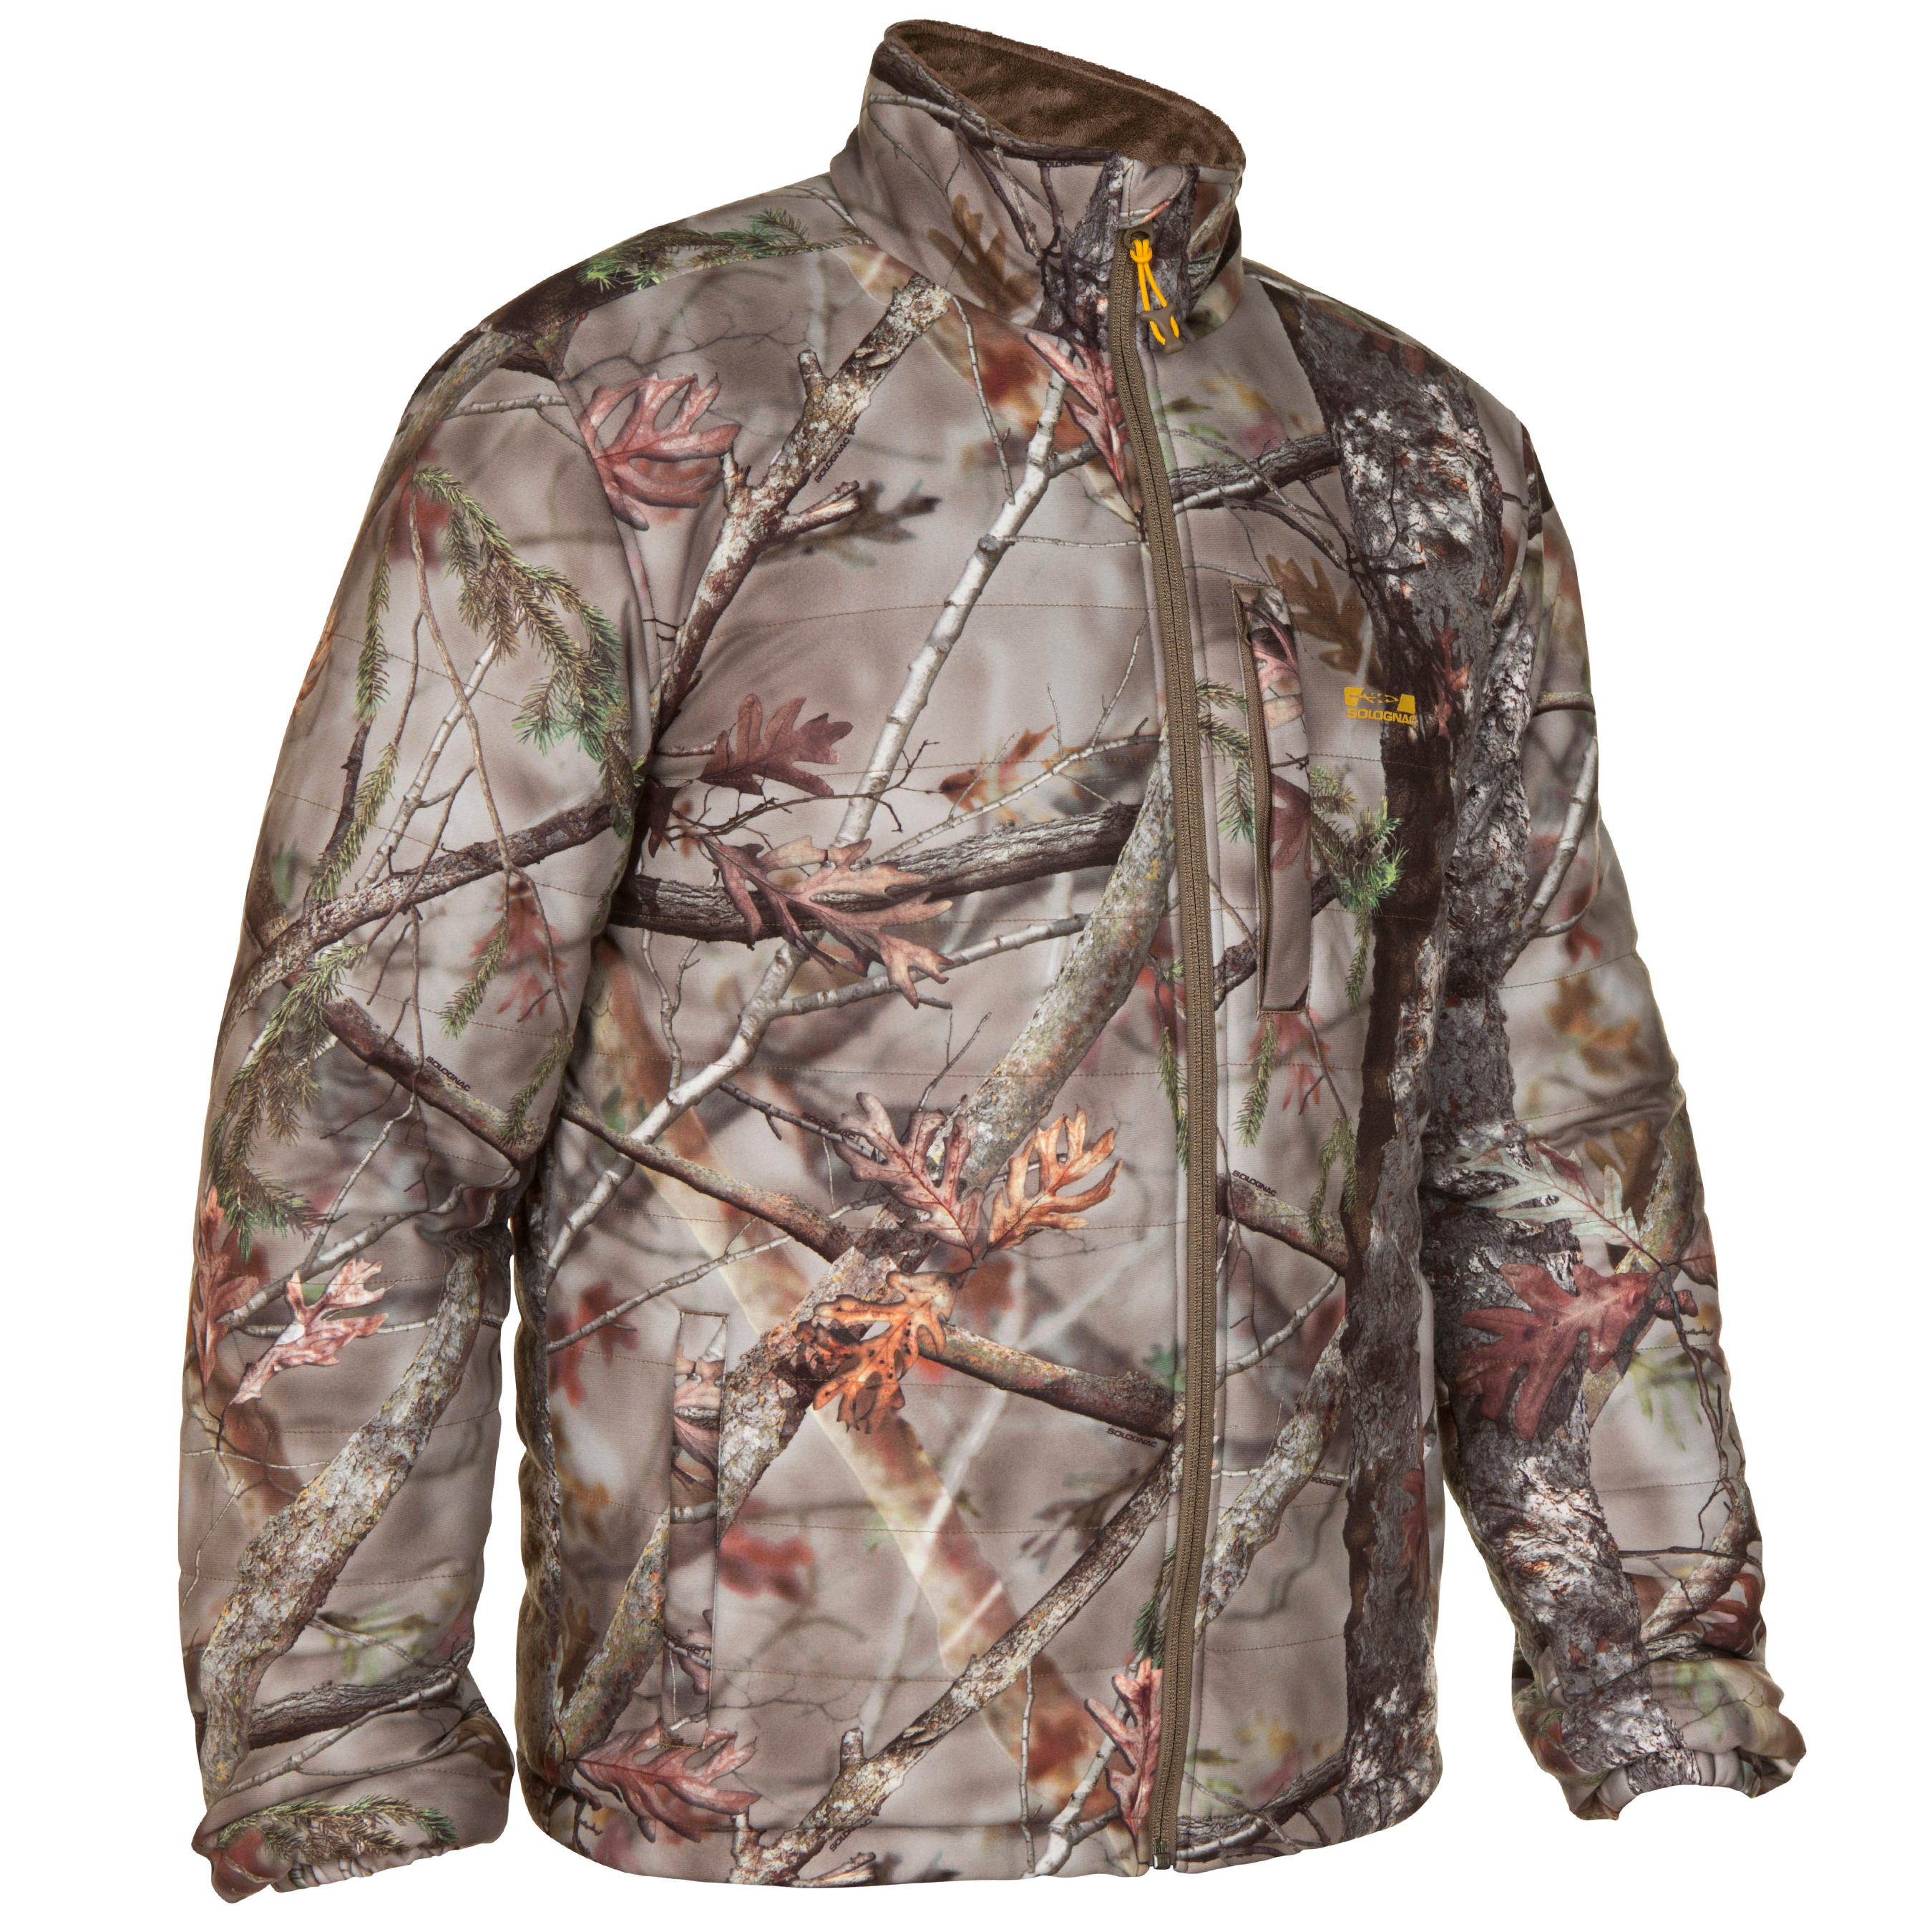 ACTIKAM 500 SILENT HUNTING JACKET - CAMOUFLAGE BROWN